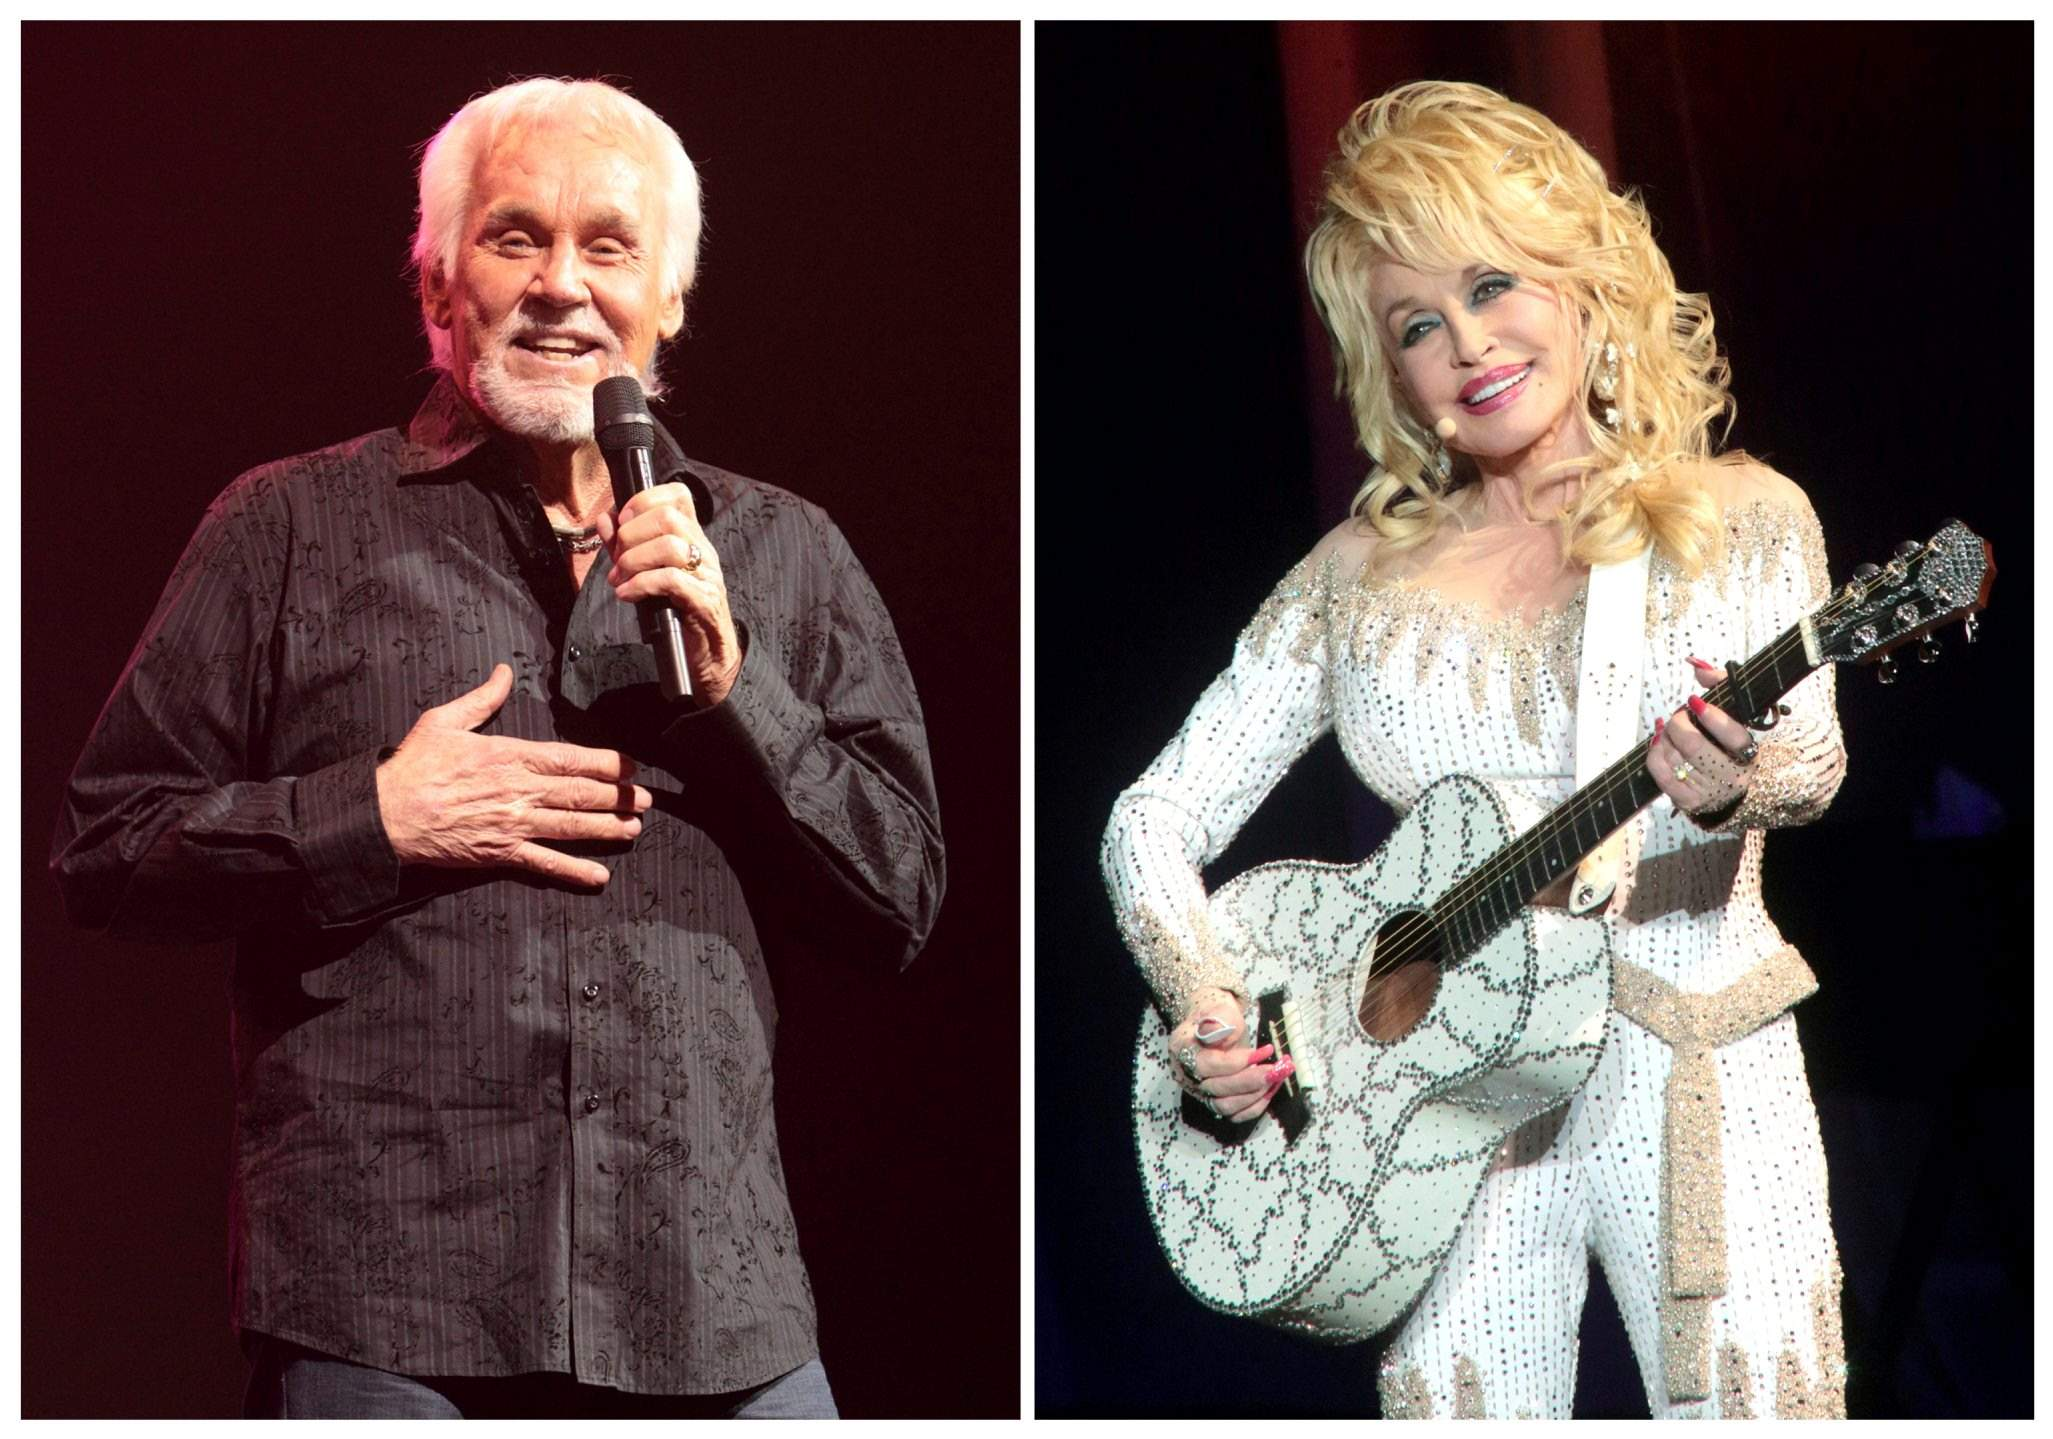 Durango Colorado Last duet: Kenny, Dolly announce final performance together News 60x60 image